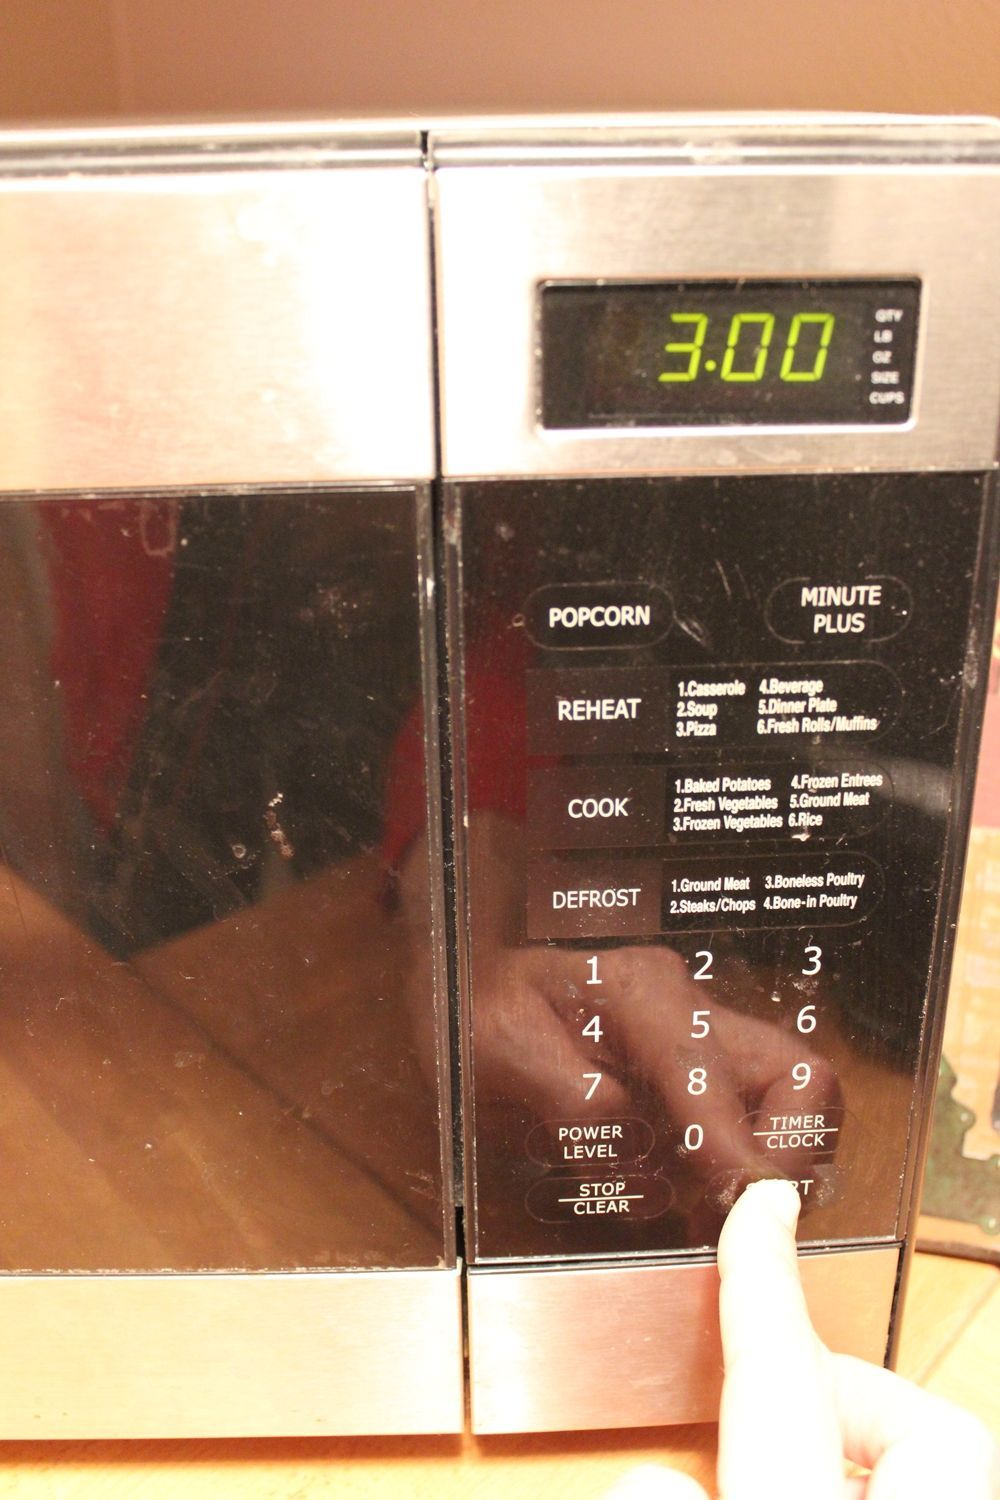 DIY Microwave Cleaner - three minutes high power